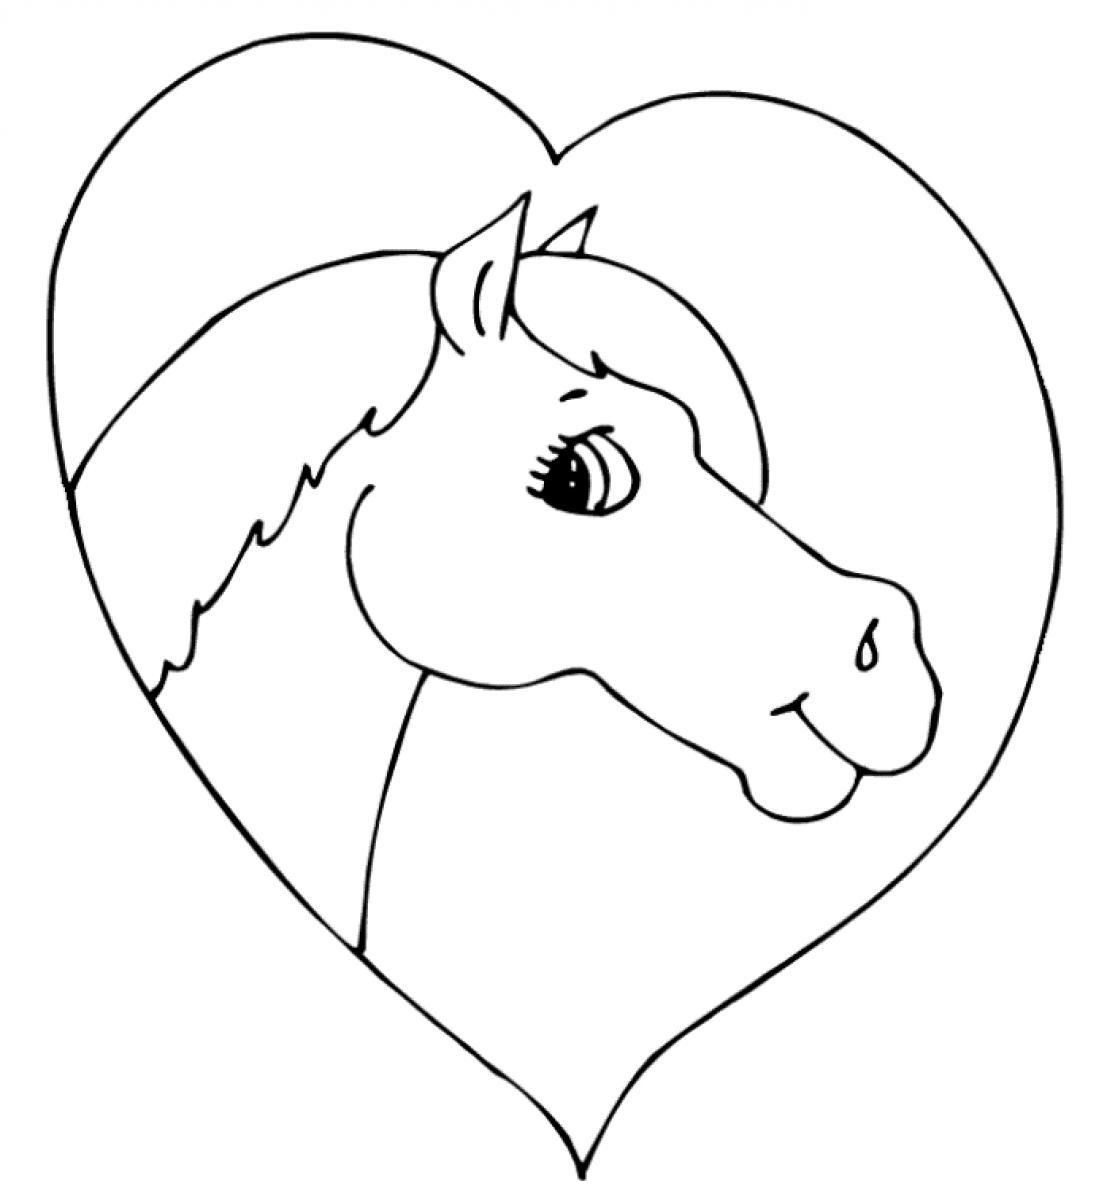 Horse-Heart-Preschool-Coloring-Page